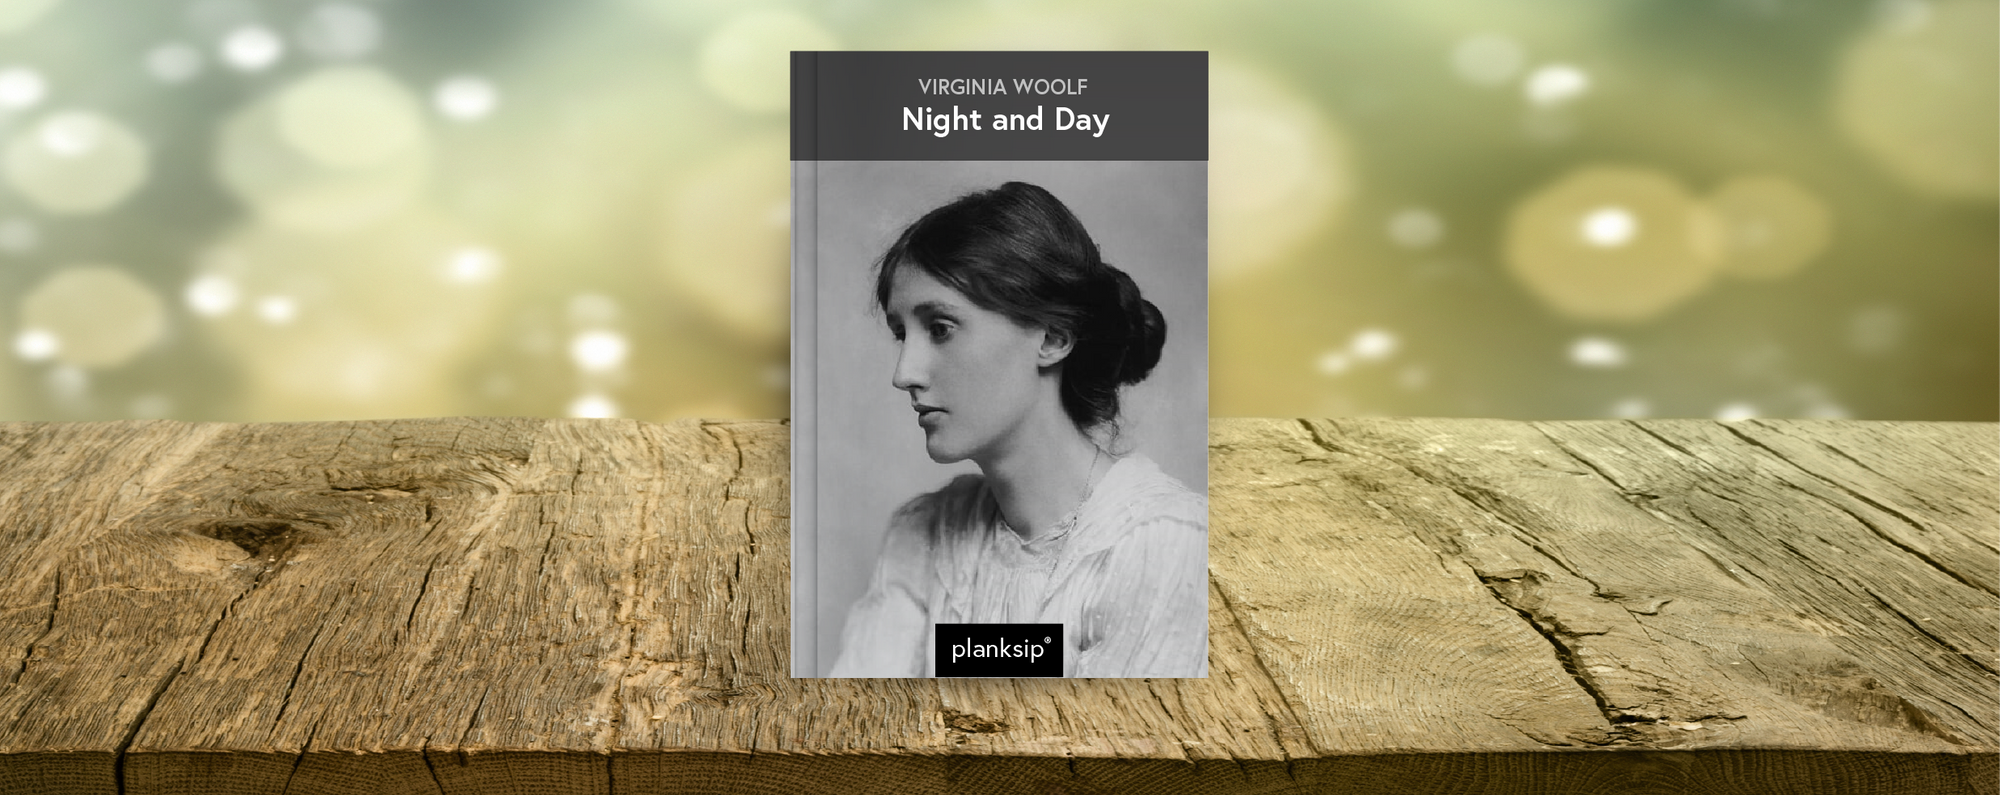 Night and Day by Virginia Woolf (1882-1941). Published by planksip